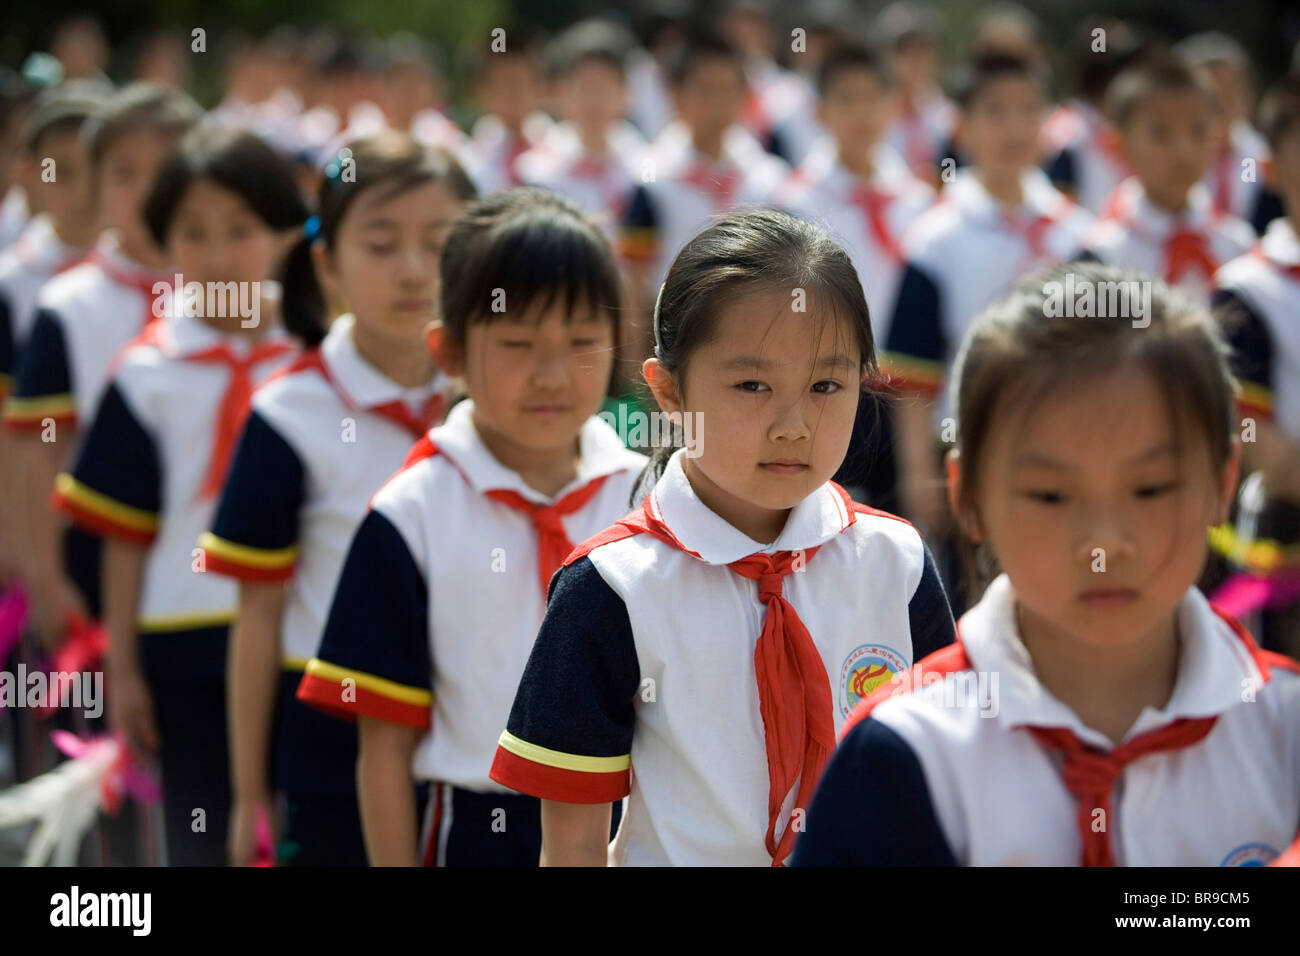 School chinese uniforms photo forecasting to wear for autumn in 2019